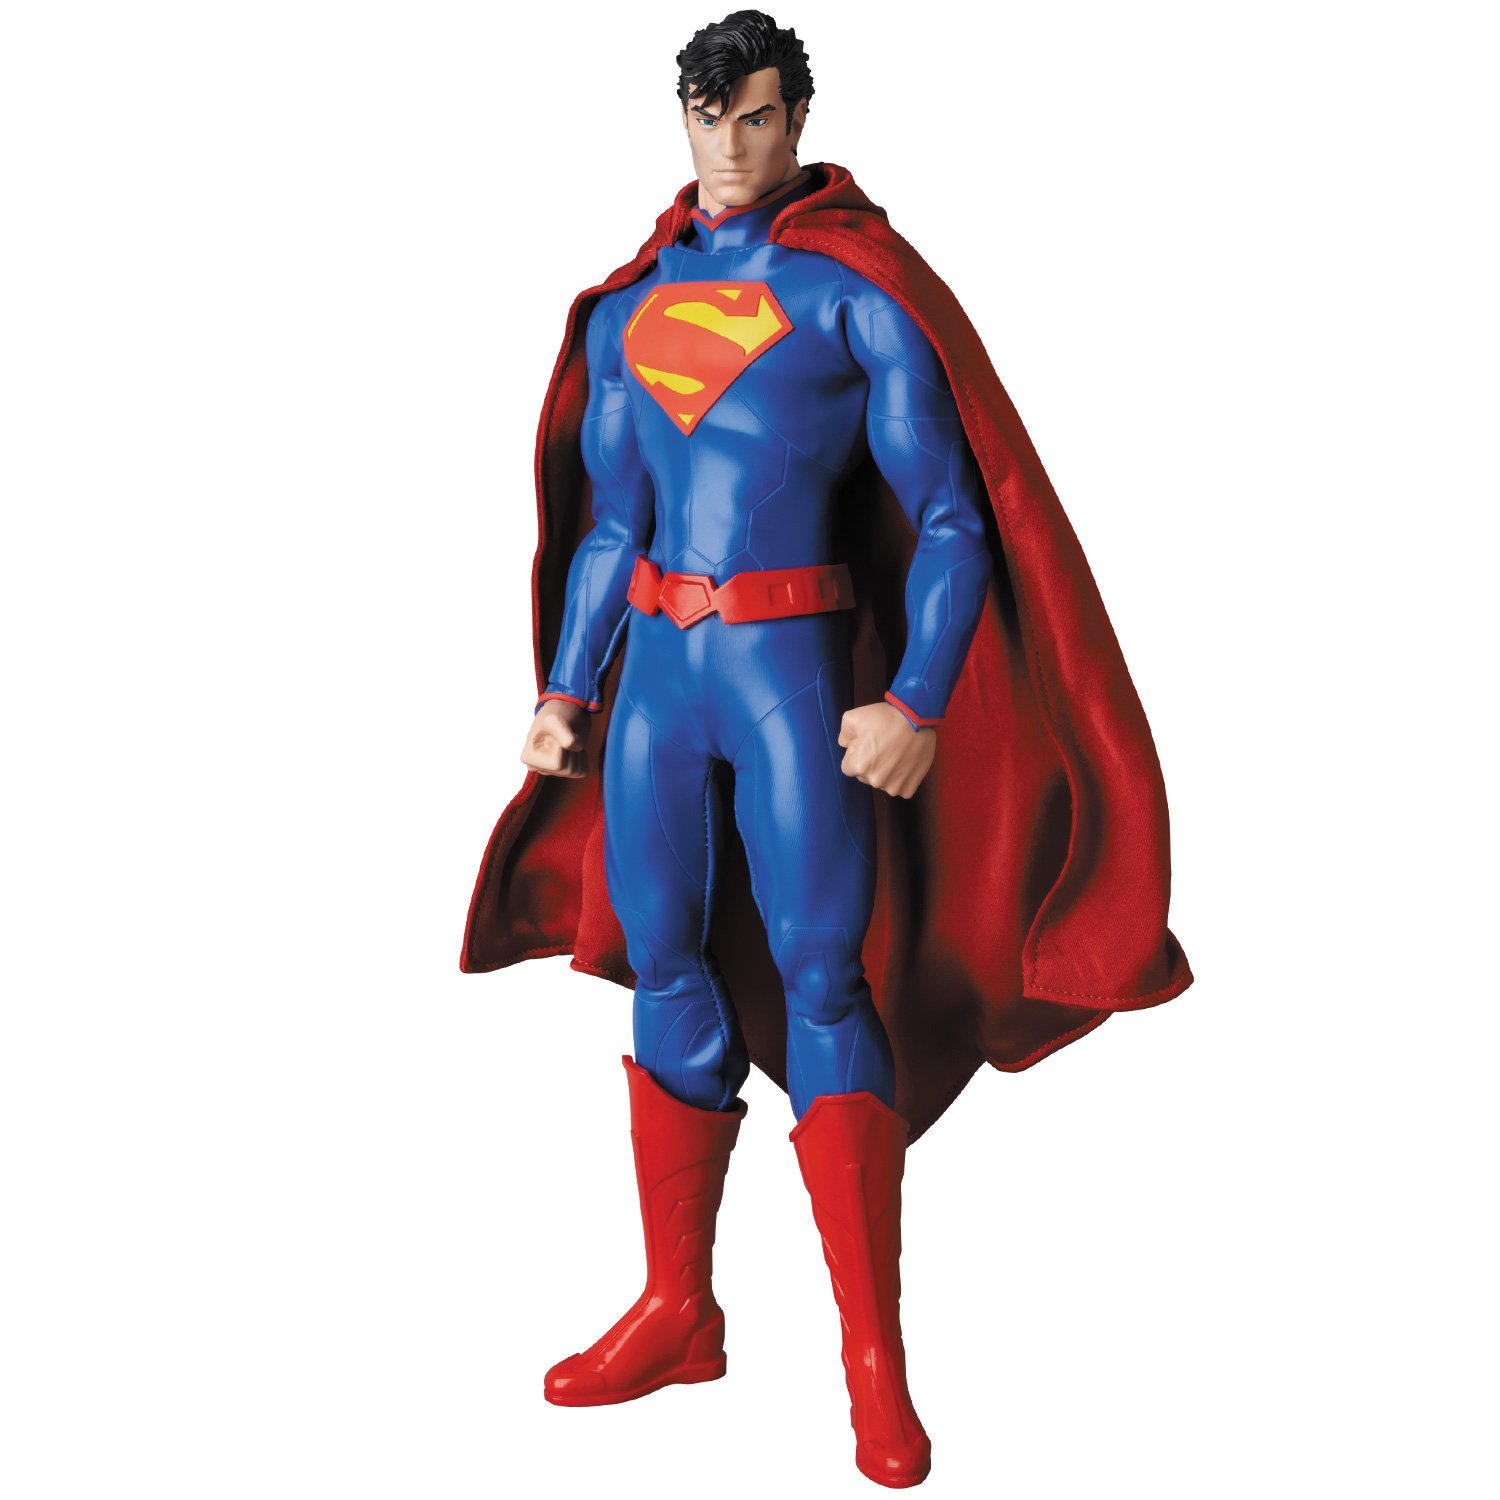 Real Action Heroes SUPERMAN (1/6 Scale ABS&ATBC-PVC Figure) by Medicom Toy